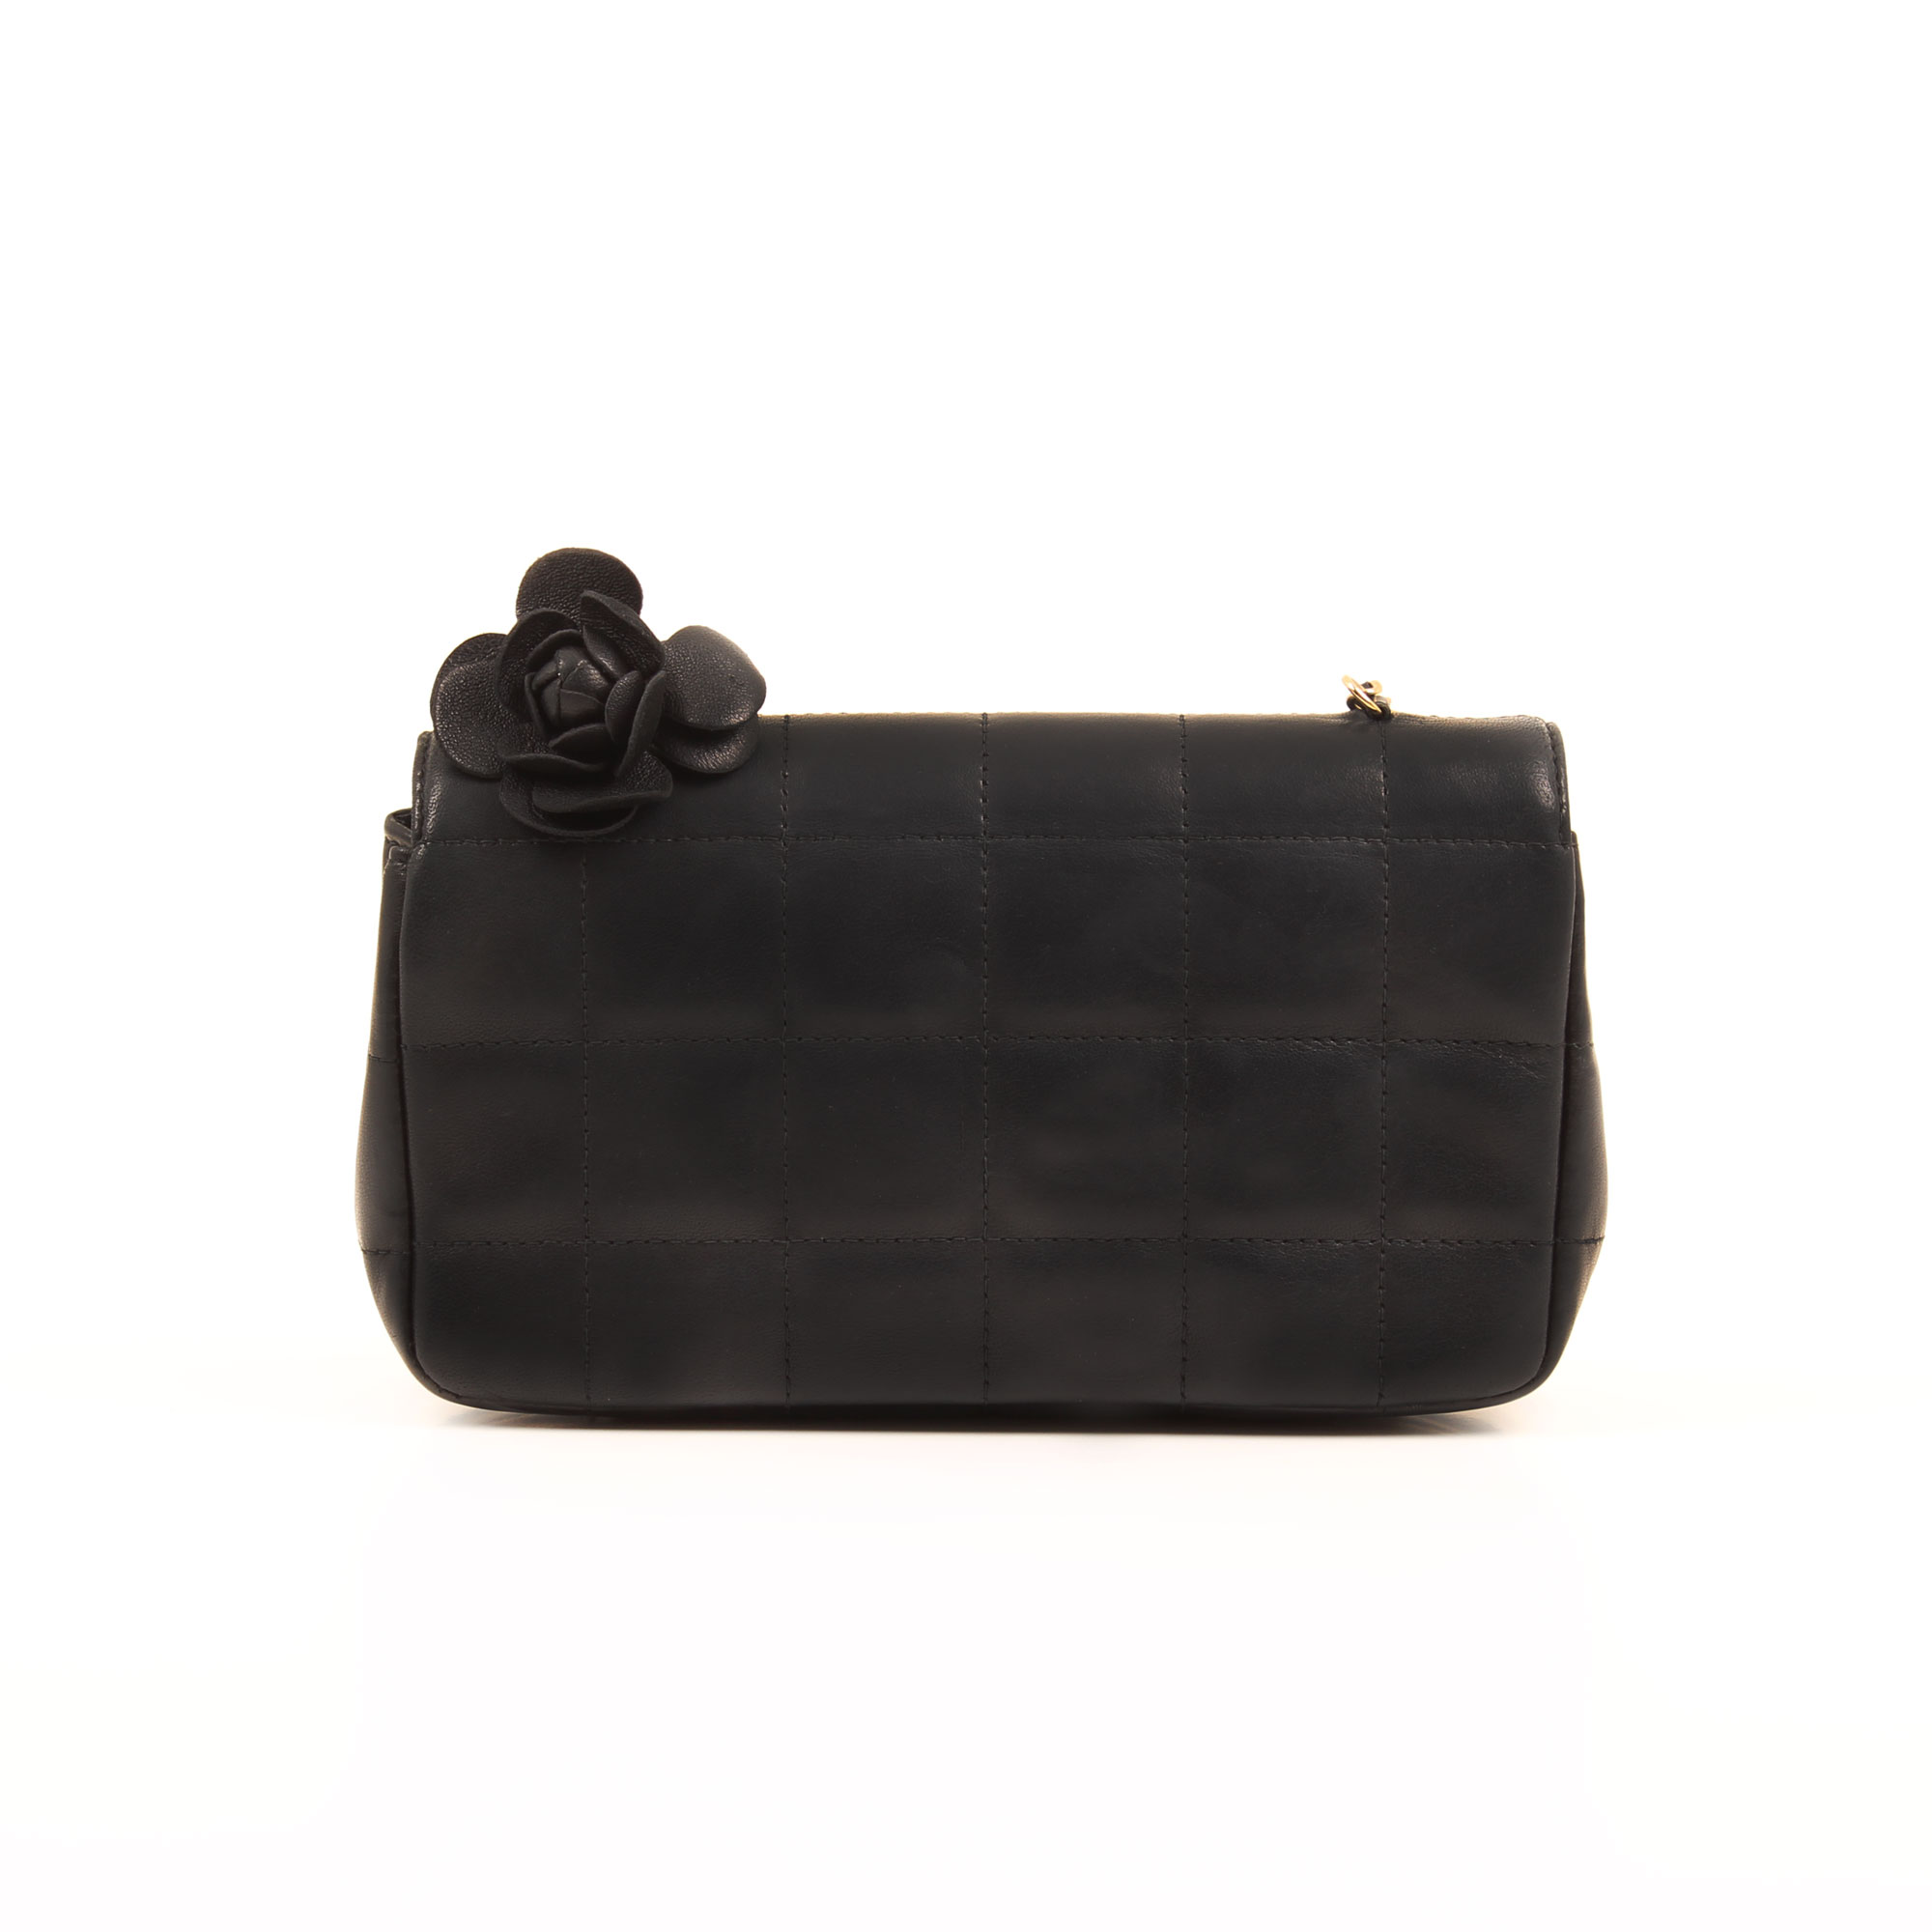 Imagen trasera del bolso chanel mini crossbody chocolate bar navy blue camelia